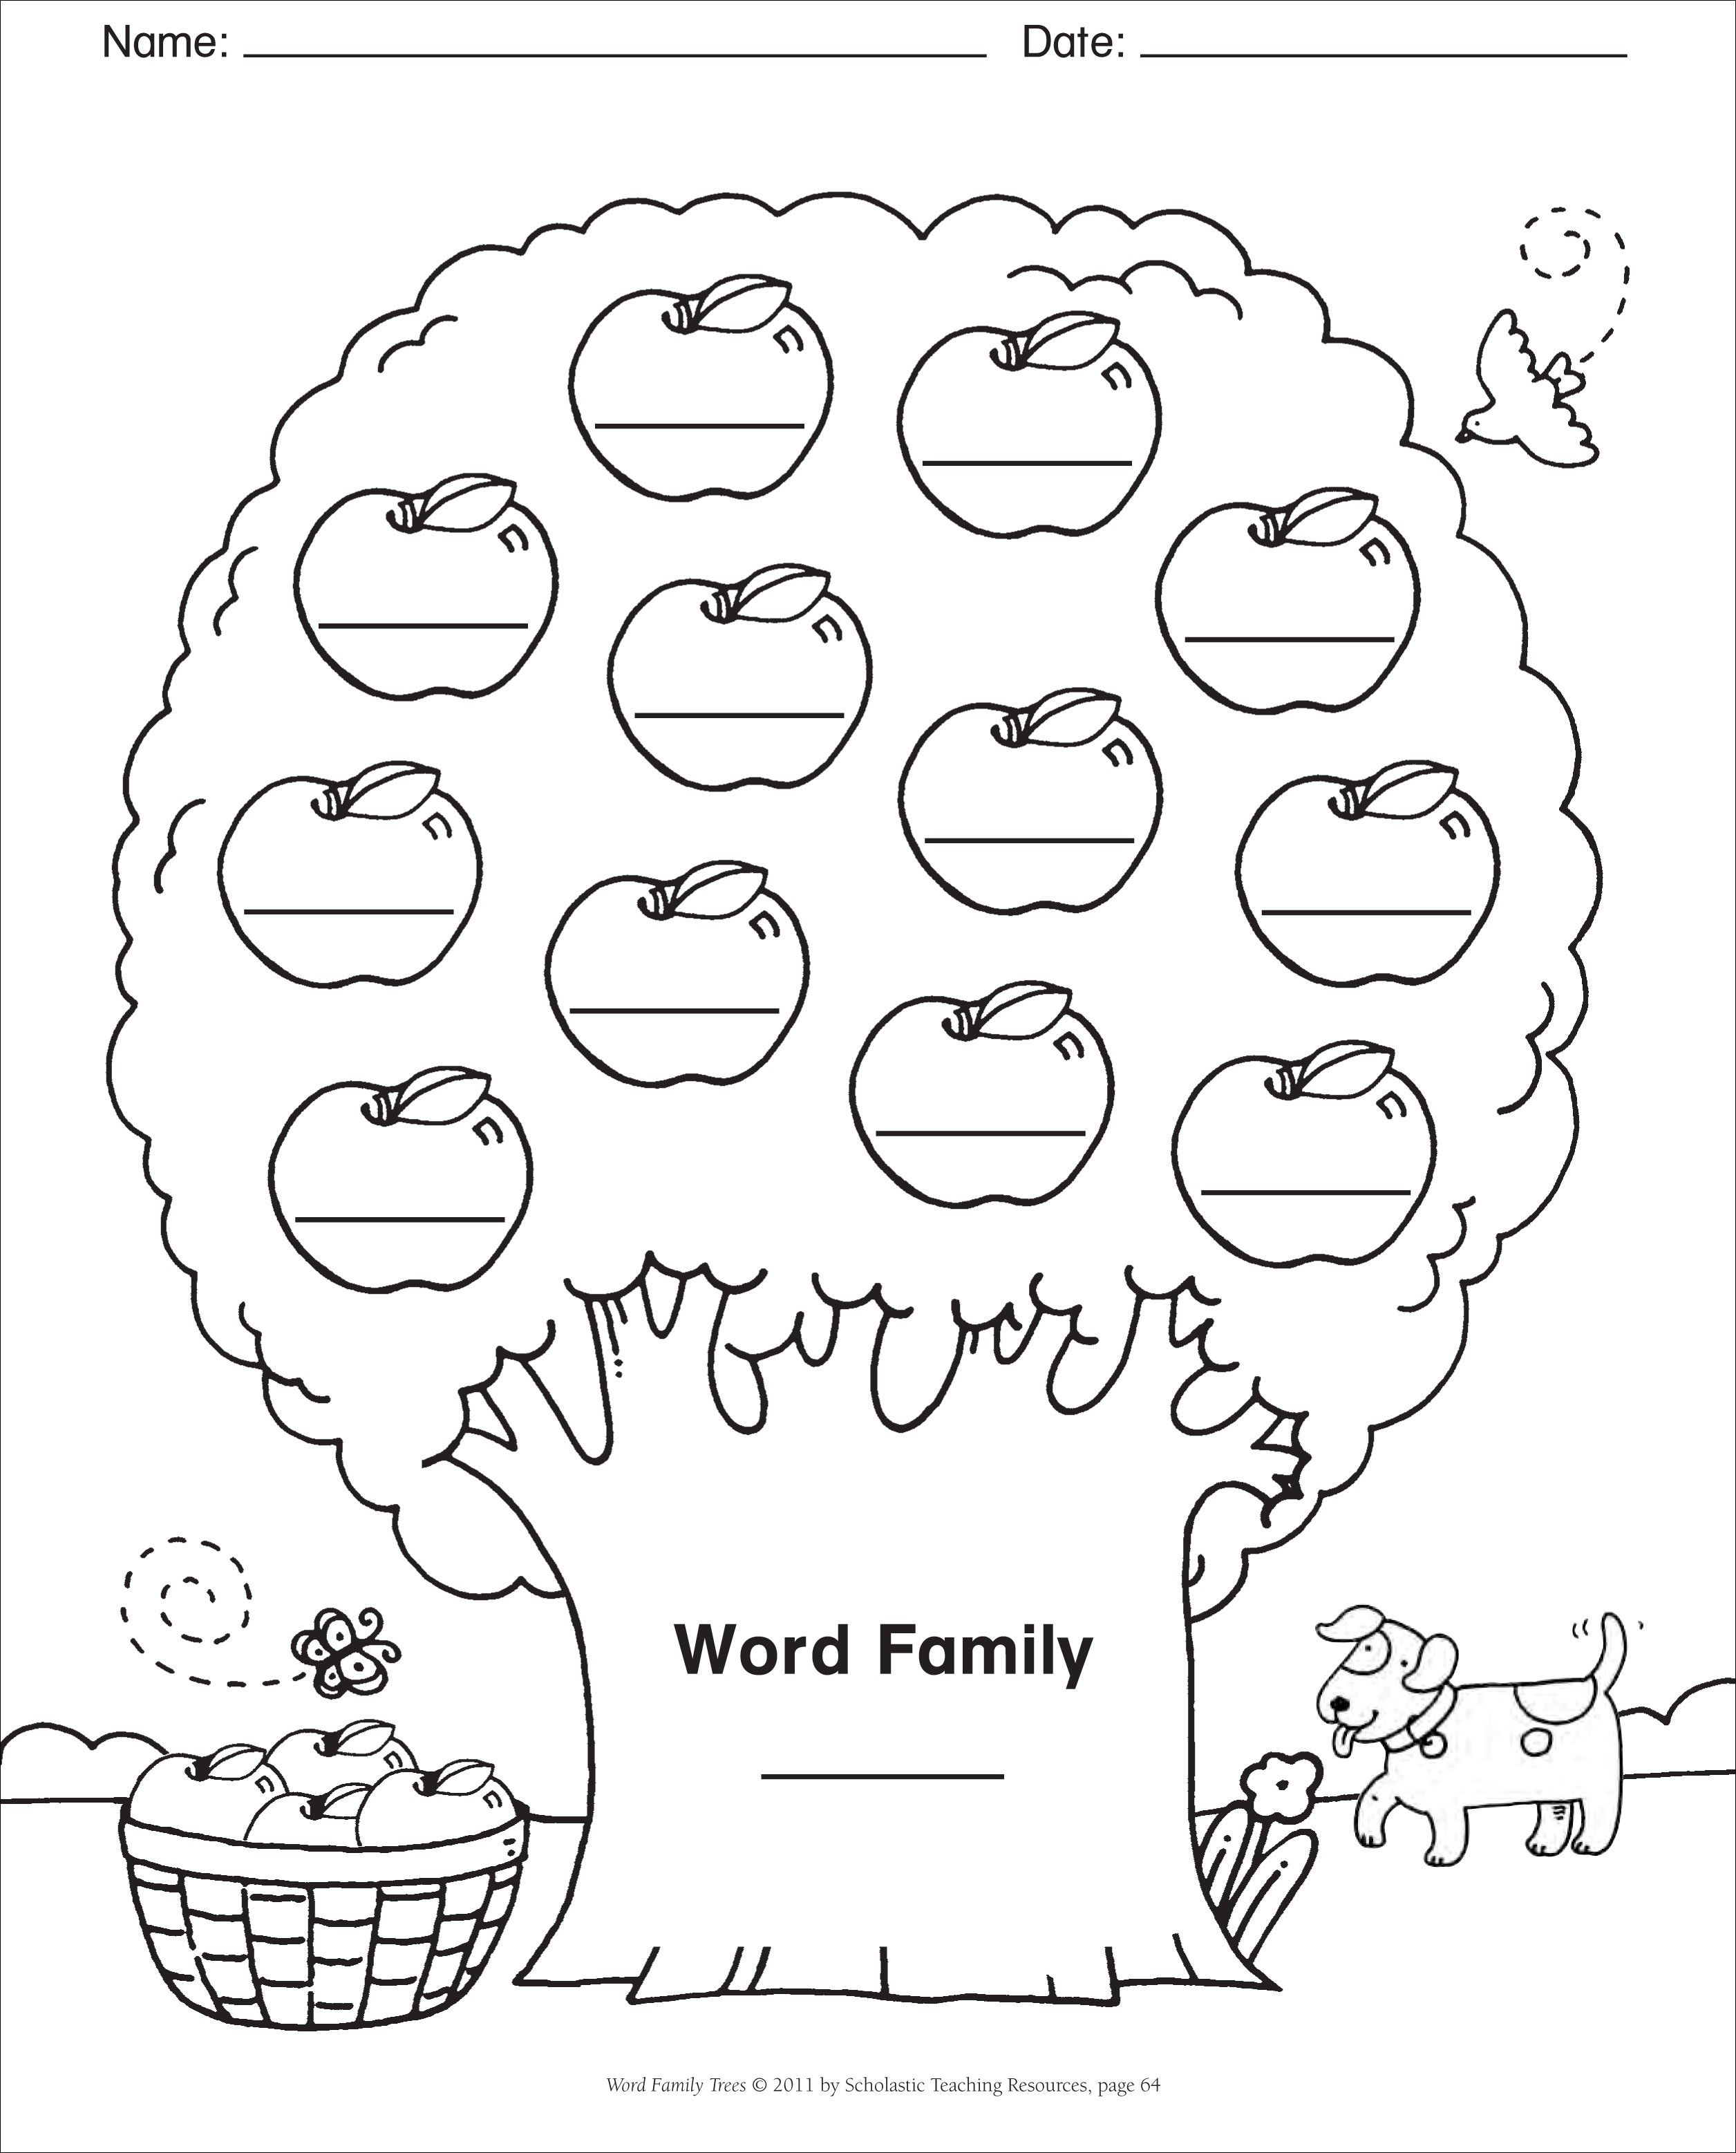 Blank Template Word Family Tree